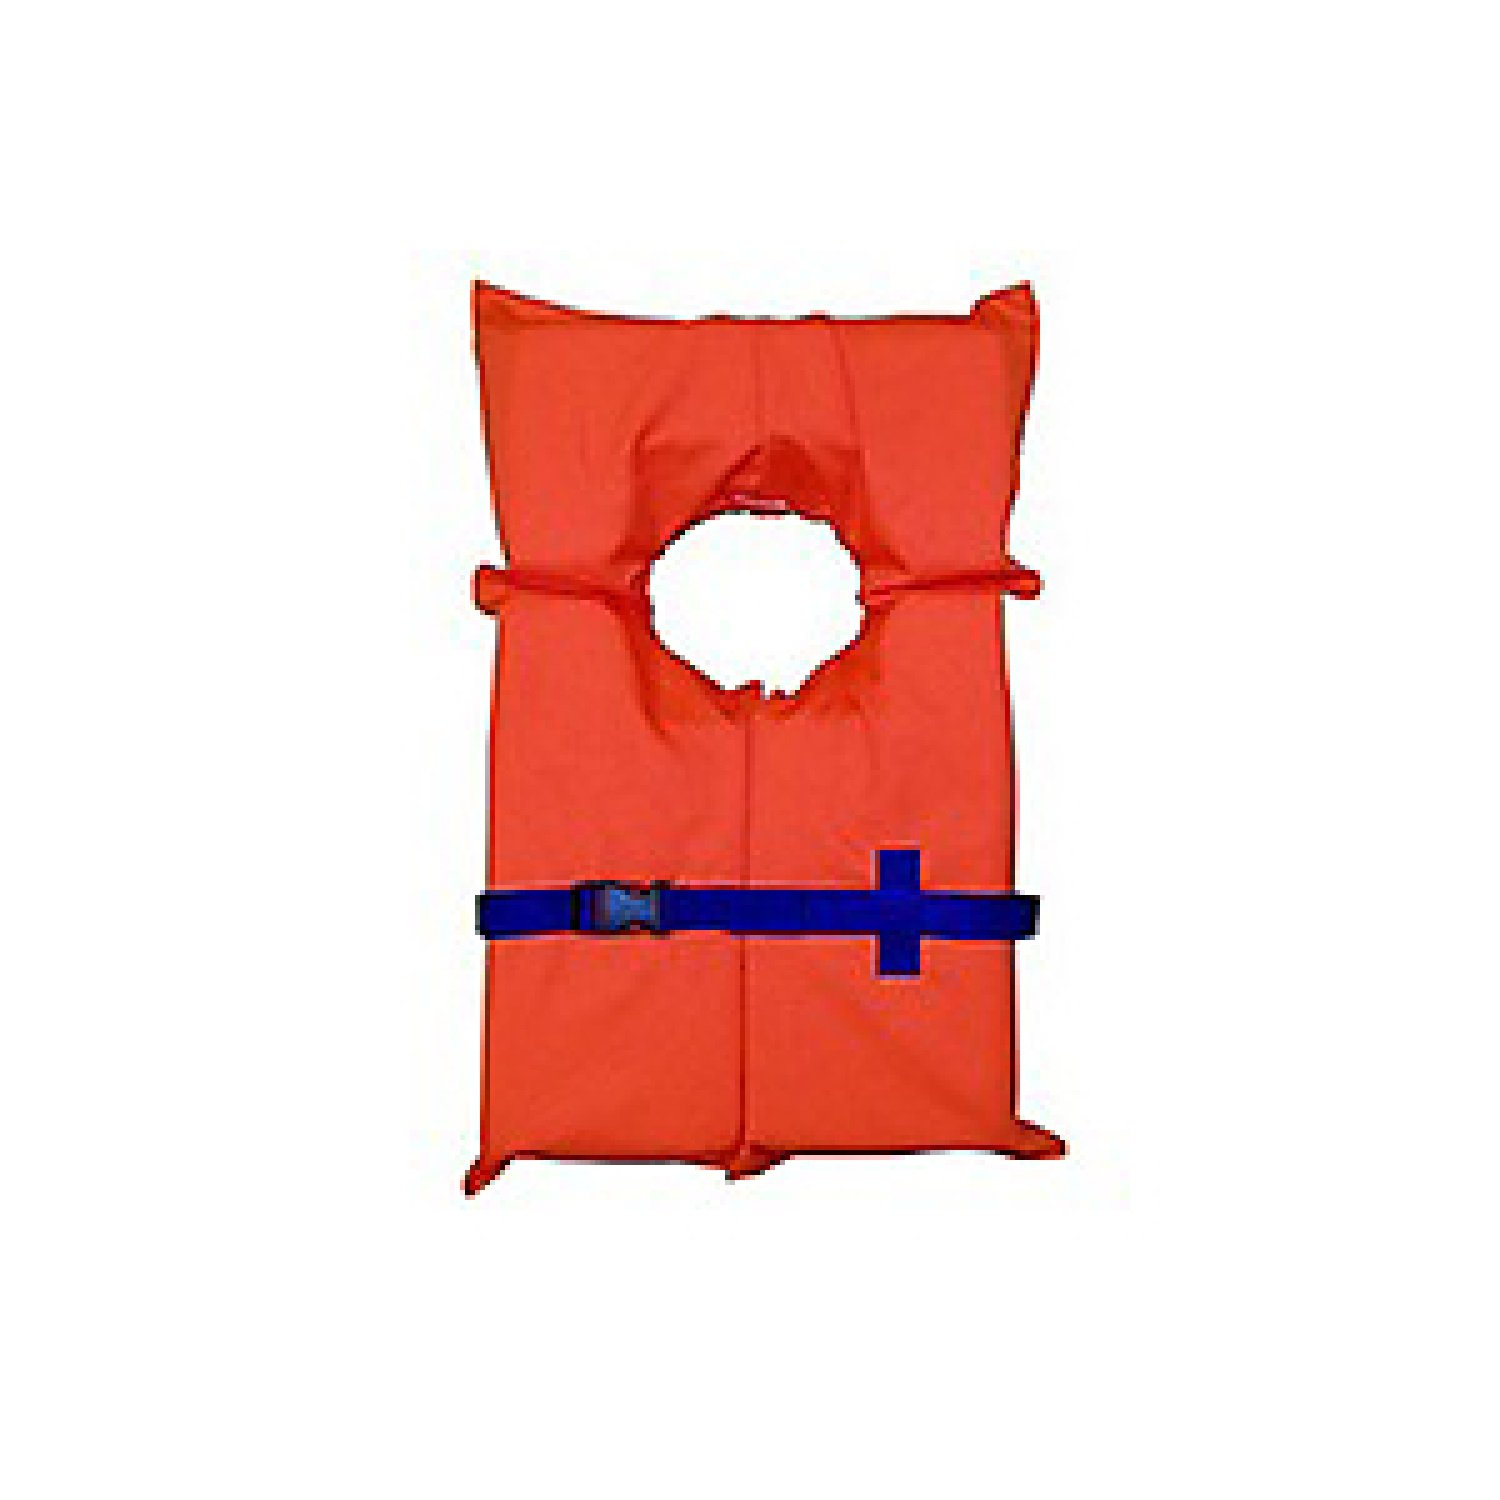 stearns-adult-type-ii-boating-lifevest